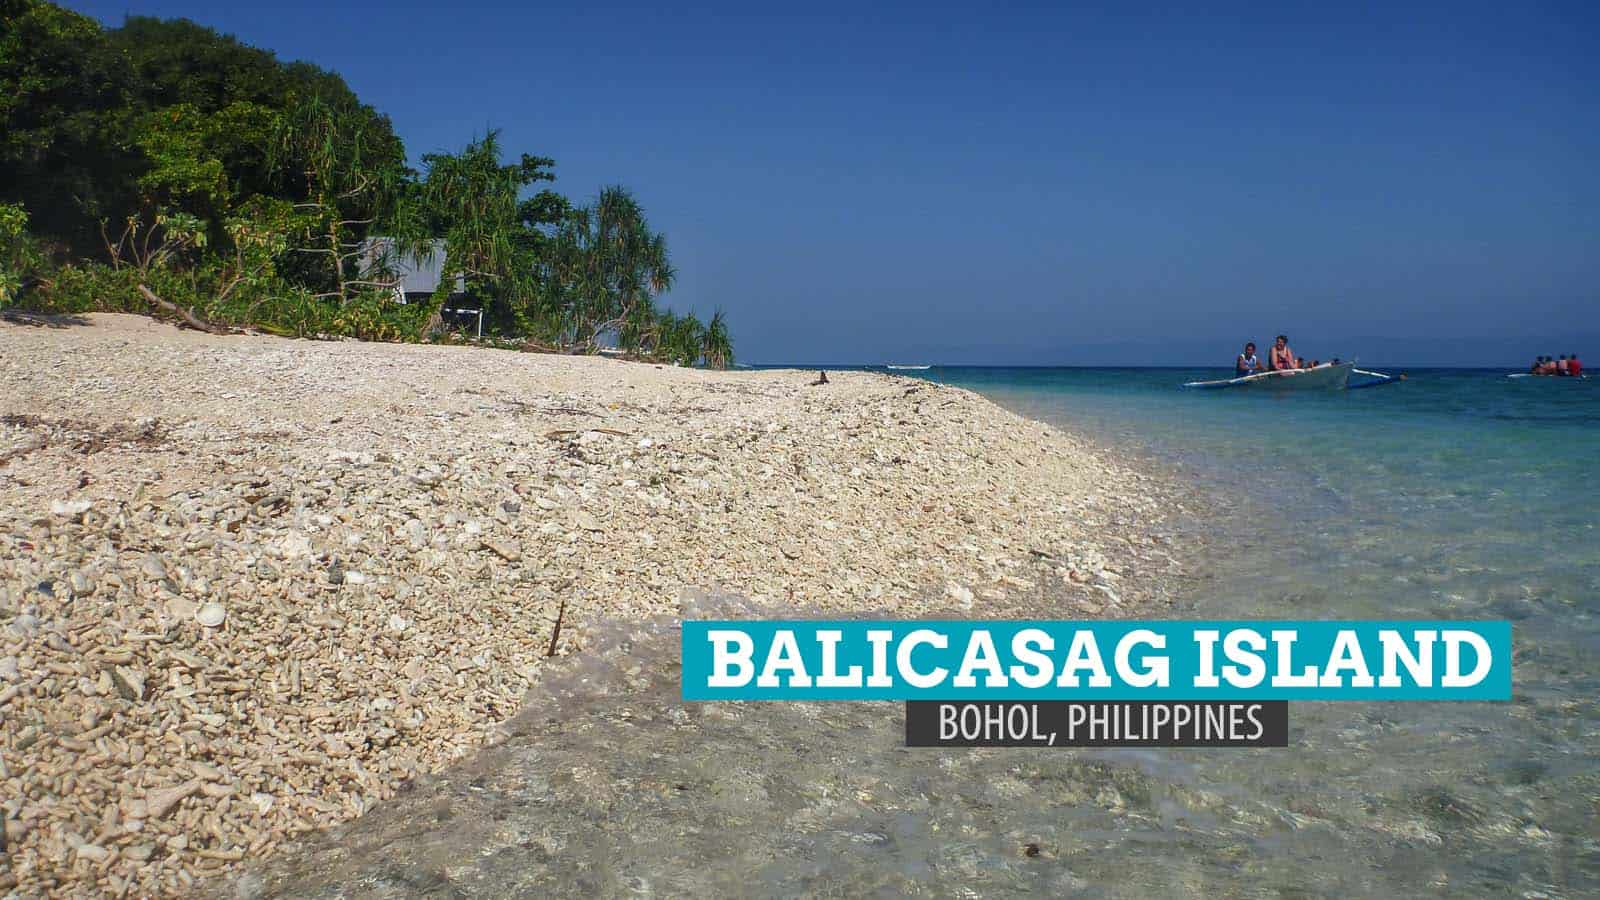 BALICASAG ISLAND, BOHOL: Turning the Tides